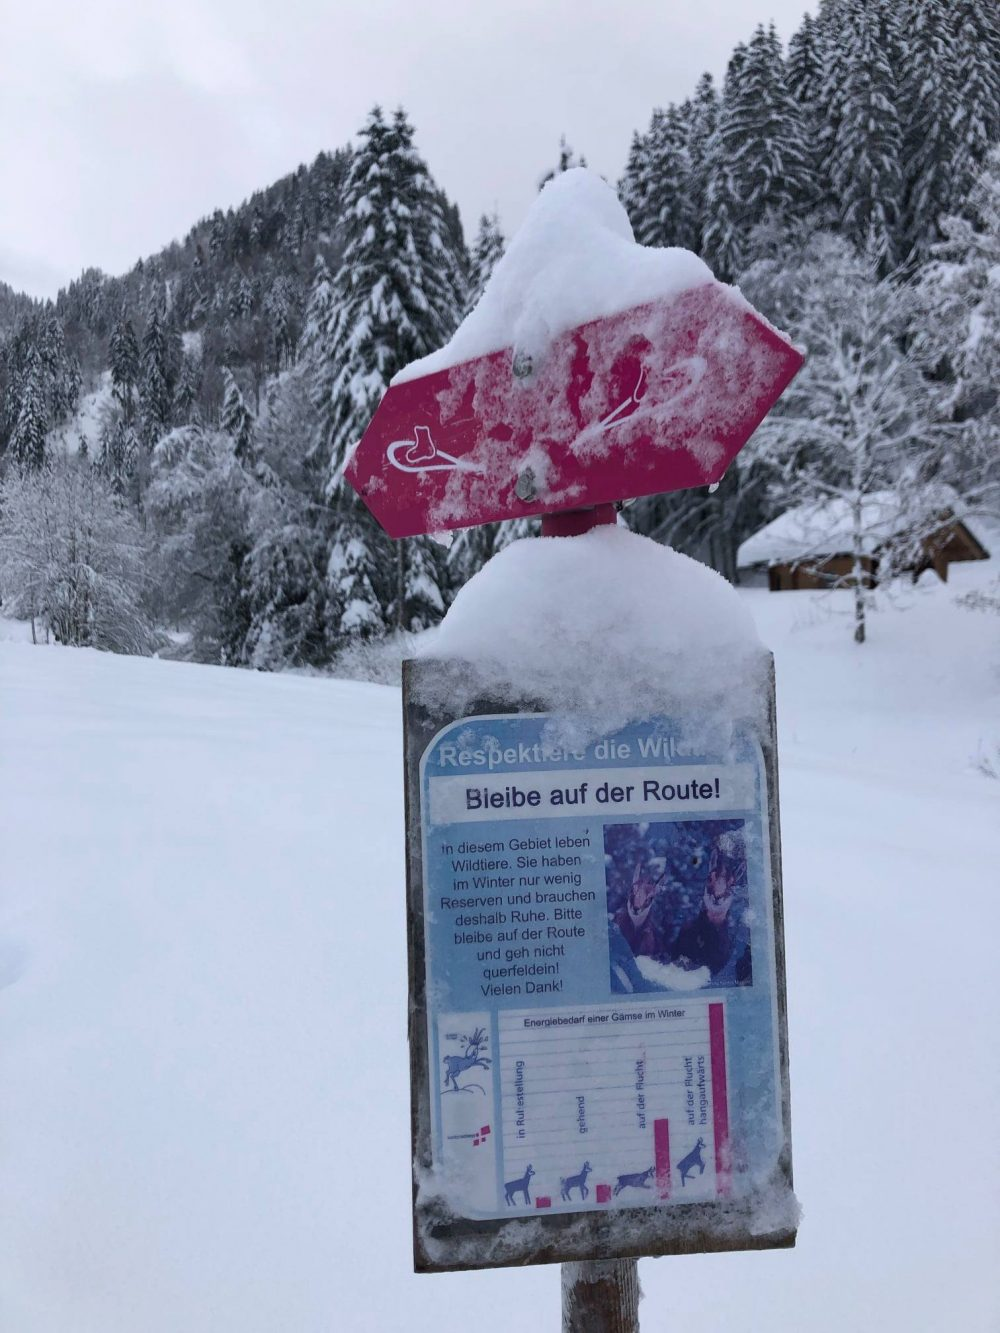 An Easy Snowshoe Hike in Chlosterweid - Not Far From Zurich